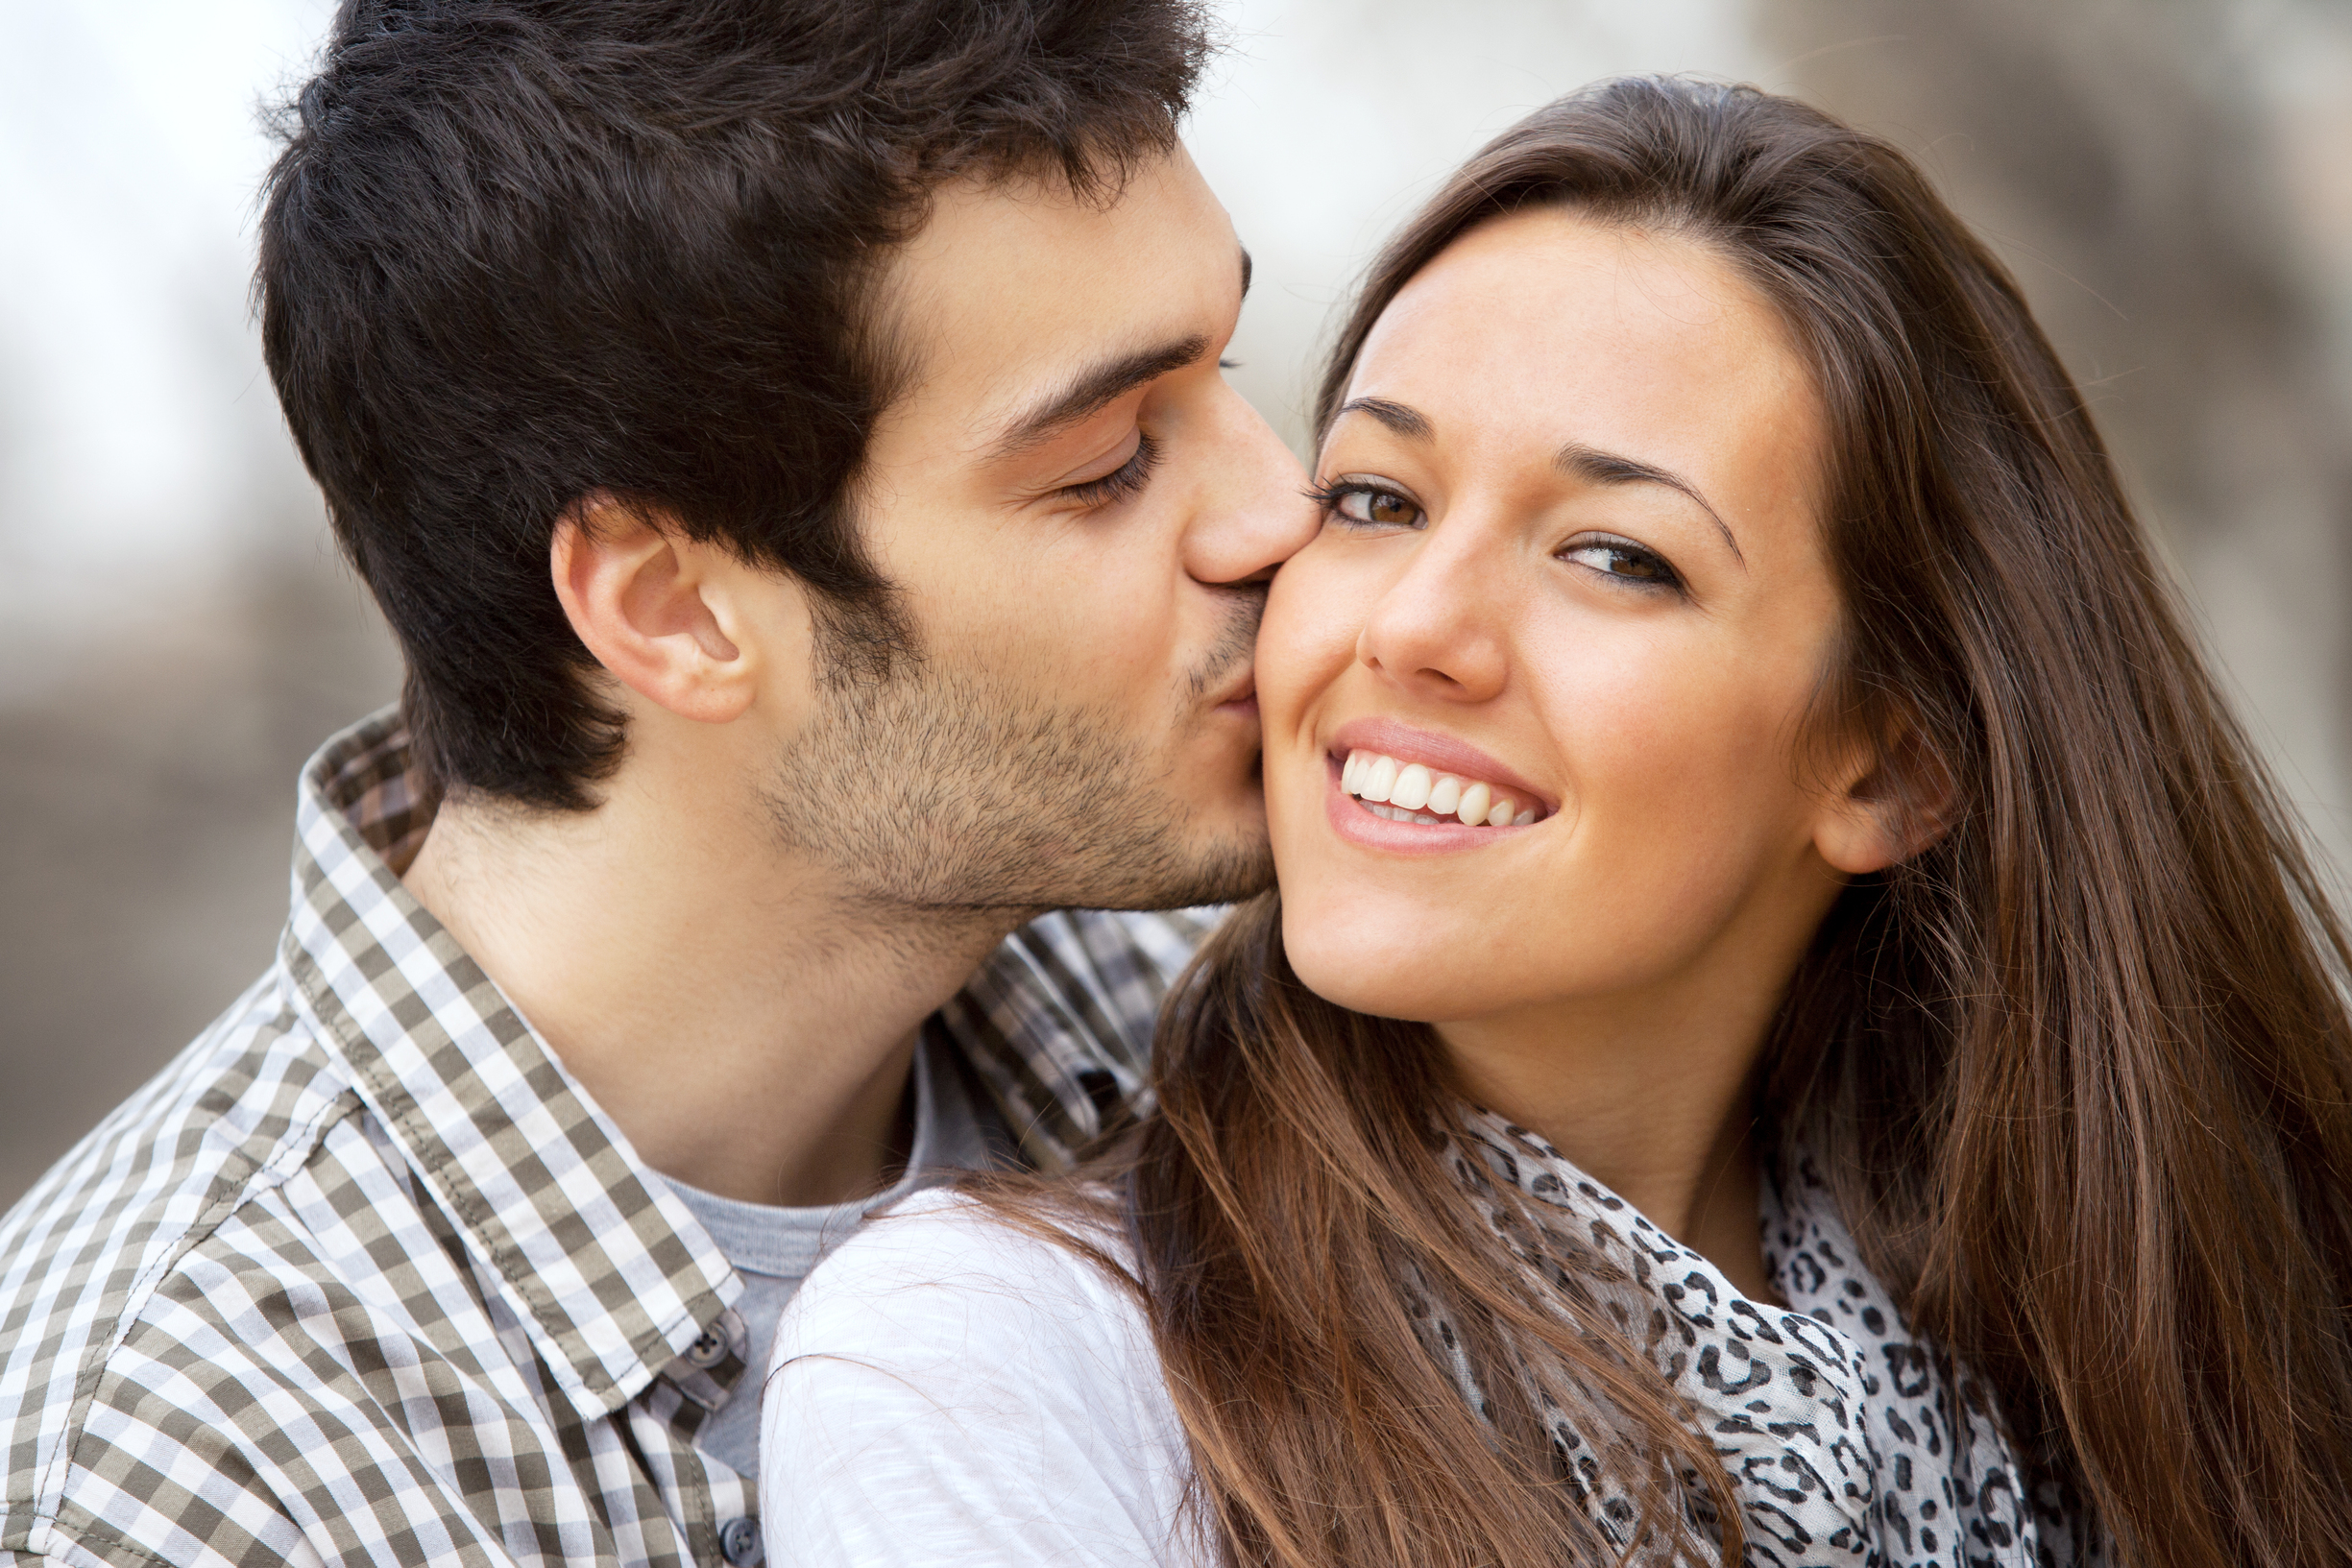 Close up portrait of boy kissing girlfriend on cheek outdoors.